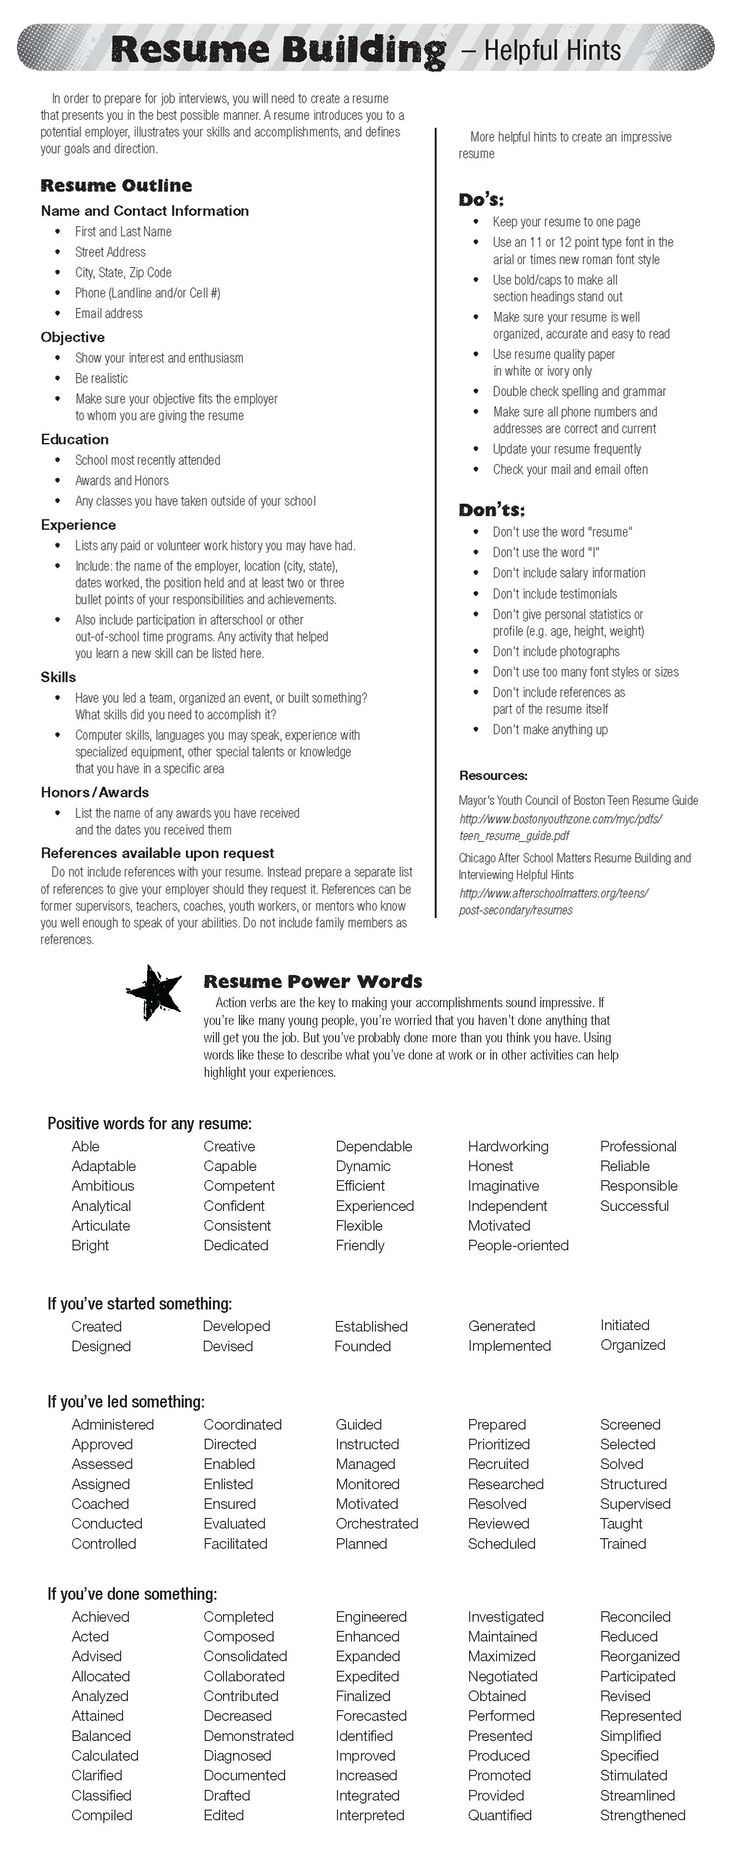 Opposenewapstandardsus  Pretty  Ideas About Resume On Pinterest  Cv Format Resume Cv And  With Lovely  Ideas About Resume On Pinterest  Cv Format Resume Cv And Resume Templates With Endearing What Is A Resume Supposed To Look Like Also How To Make A Resume For Your First Job In Addition Need Help With Resume And Resume Personal Summary As Well As Resume Development Additionally Flight Attendant Resume Objective From Pinterestcom With Opposenewapstandardsus  Lovely  Ideas About Resume On Pinterest  Cv Format Resume Cv And  With Endearing  Ideas About Resume On Pinterest  Cv Format Resume Cv And Resume Templates And Pretty What Is A Resume Supposed To Look Like Also How To Make A Resume For Your First Job In Addition Need Help With Resume From Pinterestcom